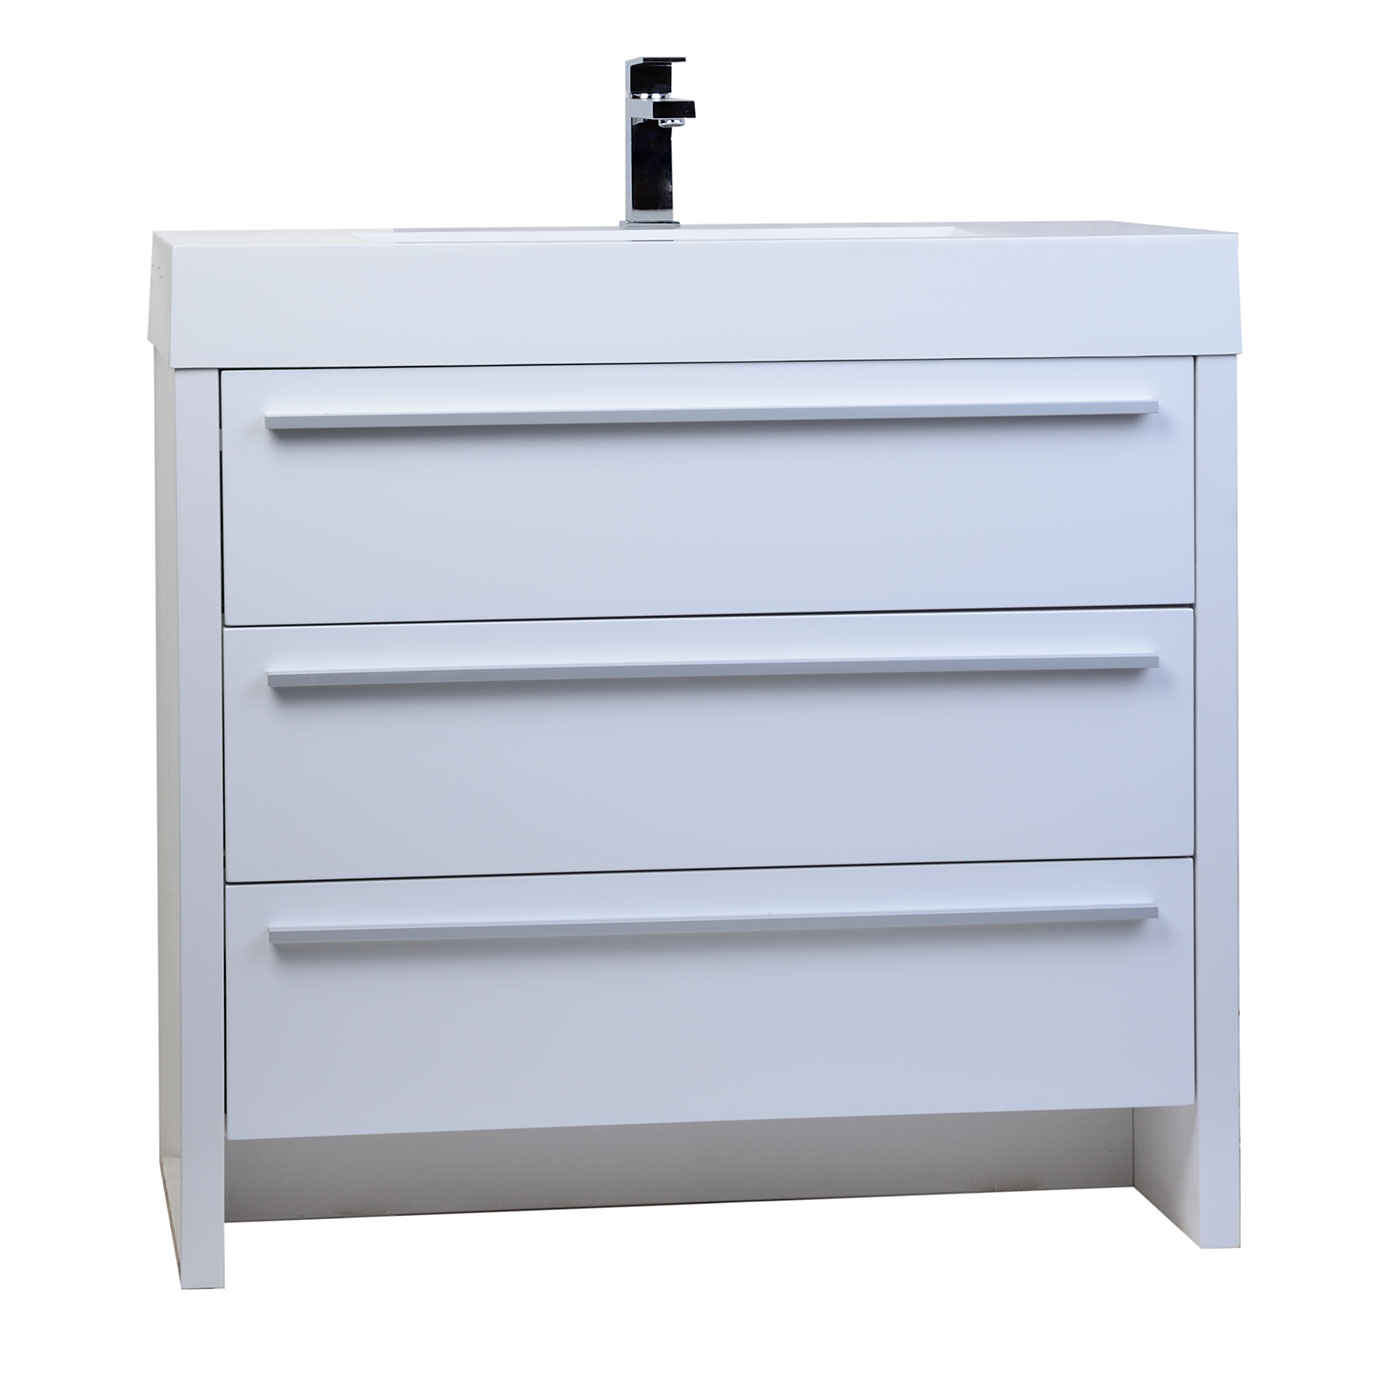 Buy vinnce 35 5 inch modern bathroom vanity in gloss white Bathroom sink cabinets modern